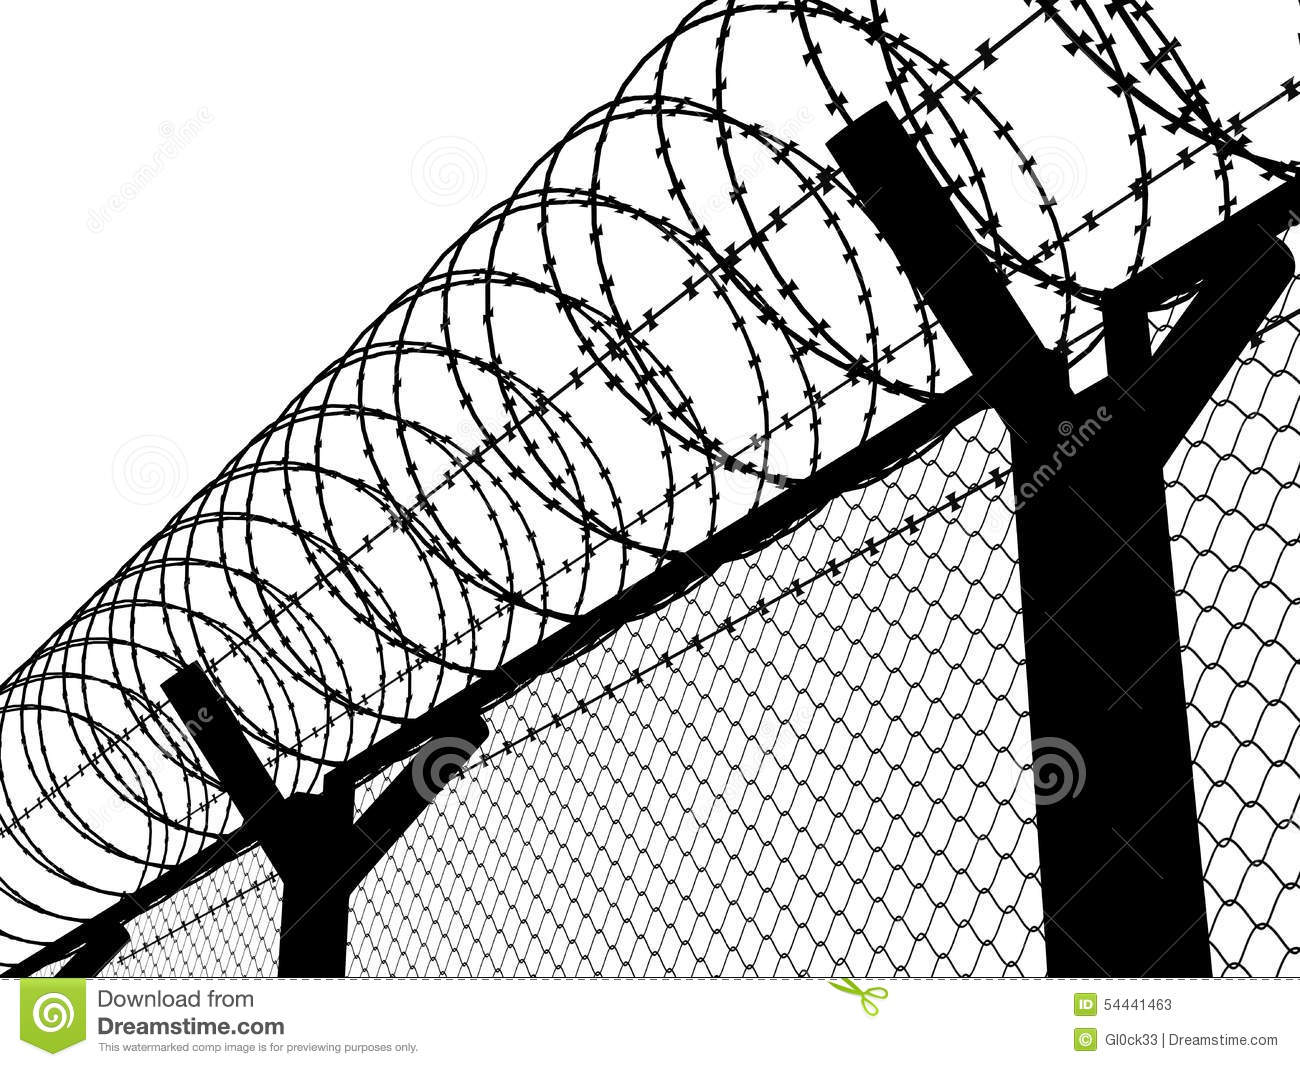 Attractive Barbed Wire 1800s Motif - The Wire - magnox.info